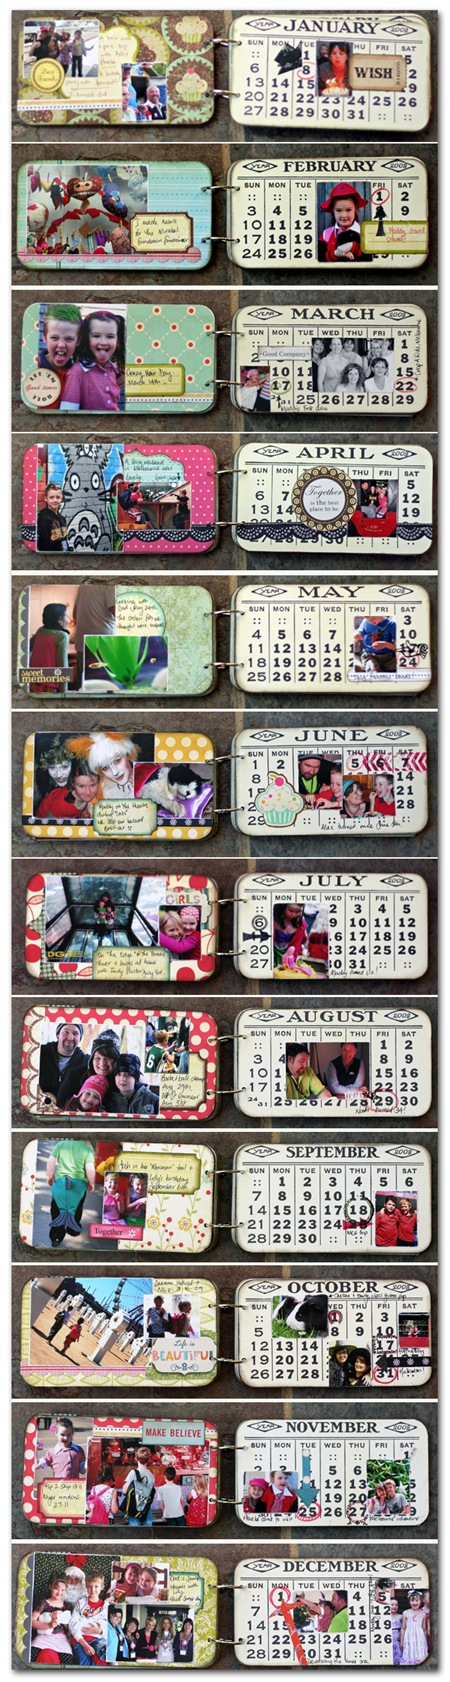 Calendar pages - Nic F02